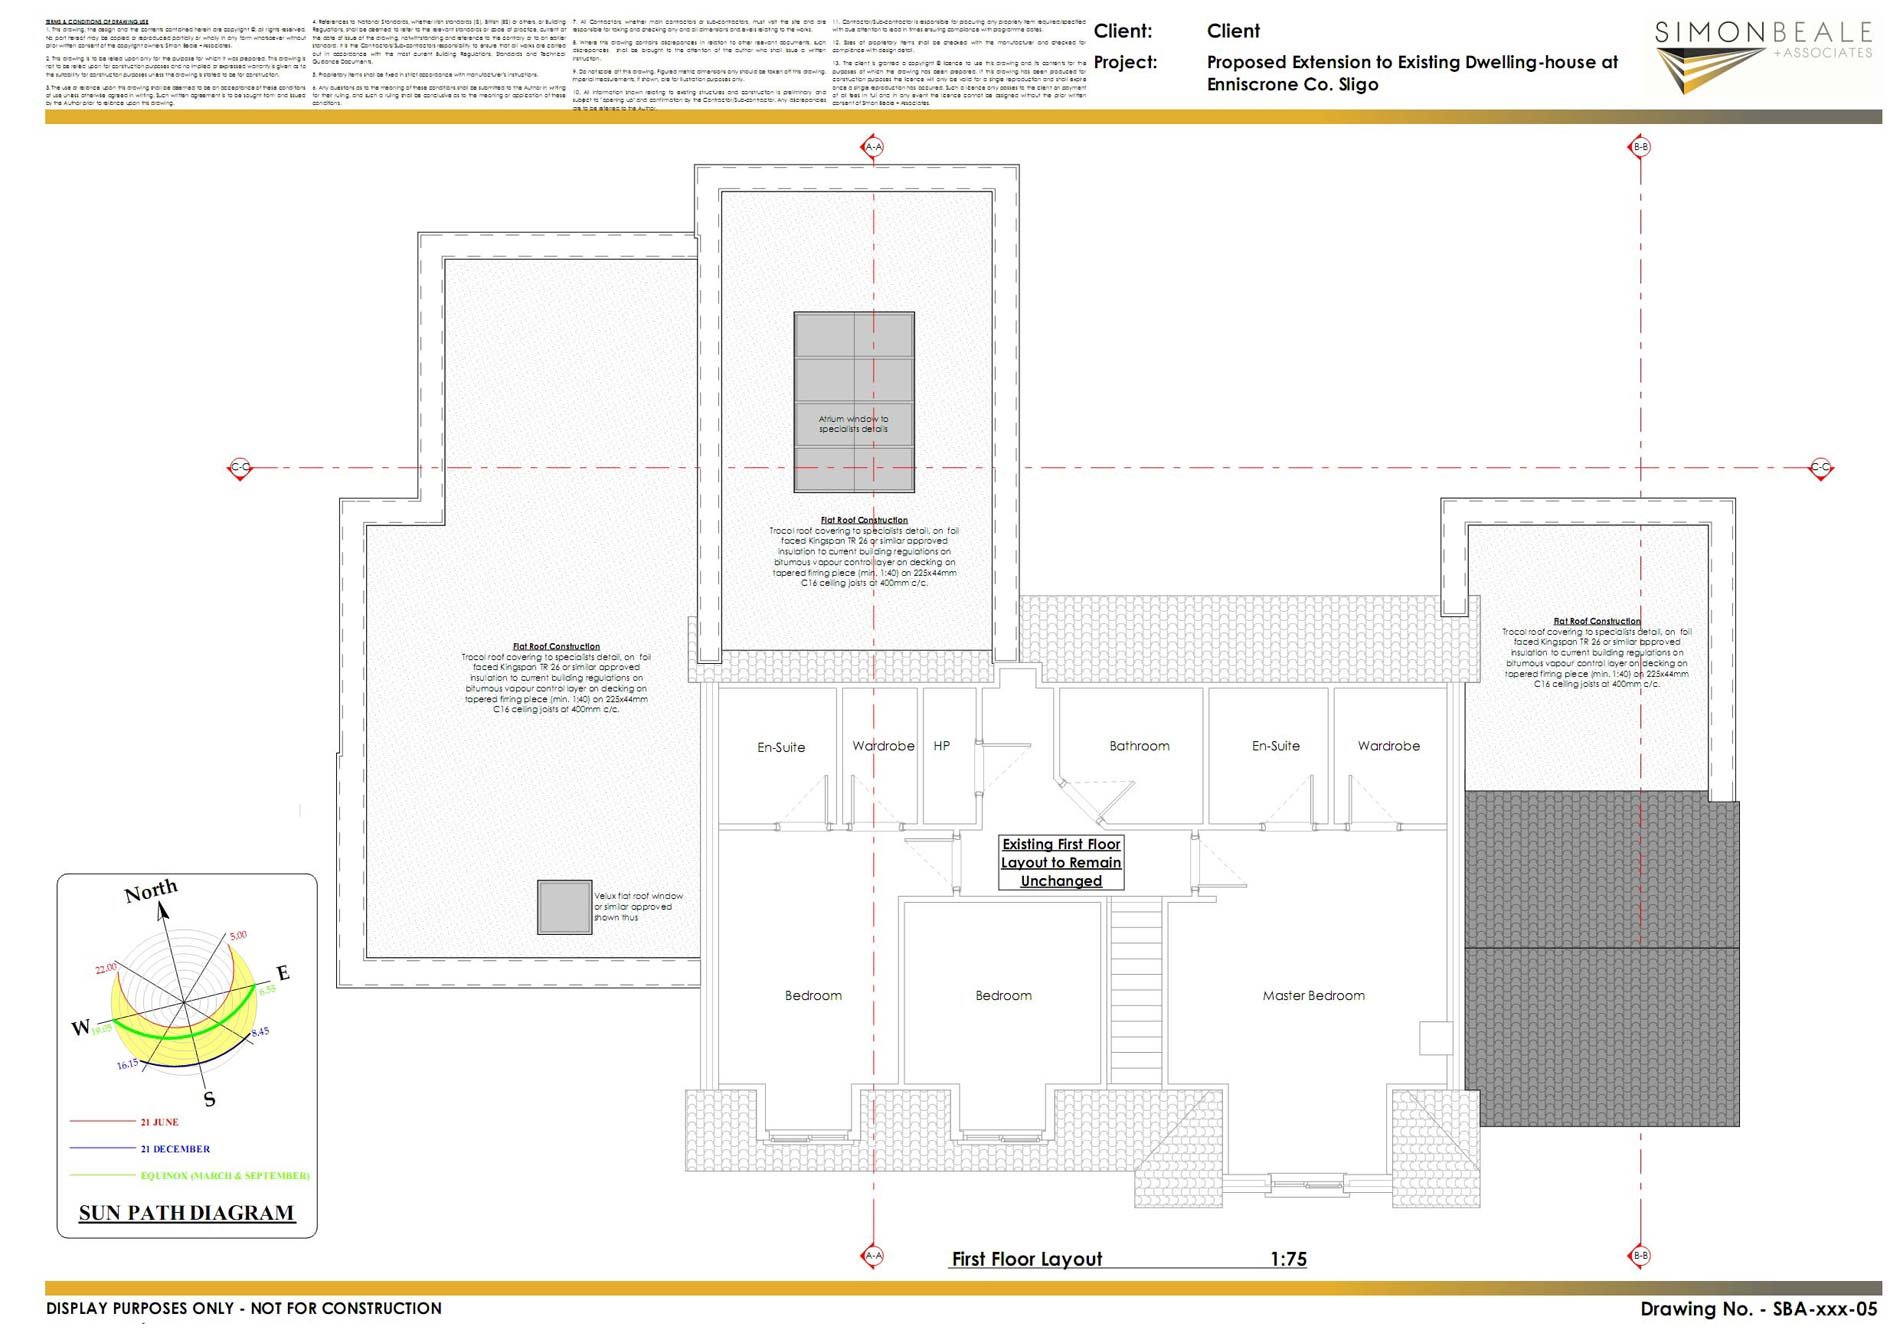 05 First Floor Layout_pagenumber.001